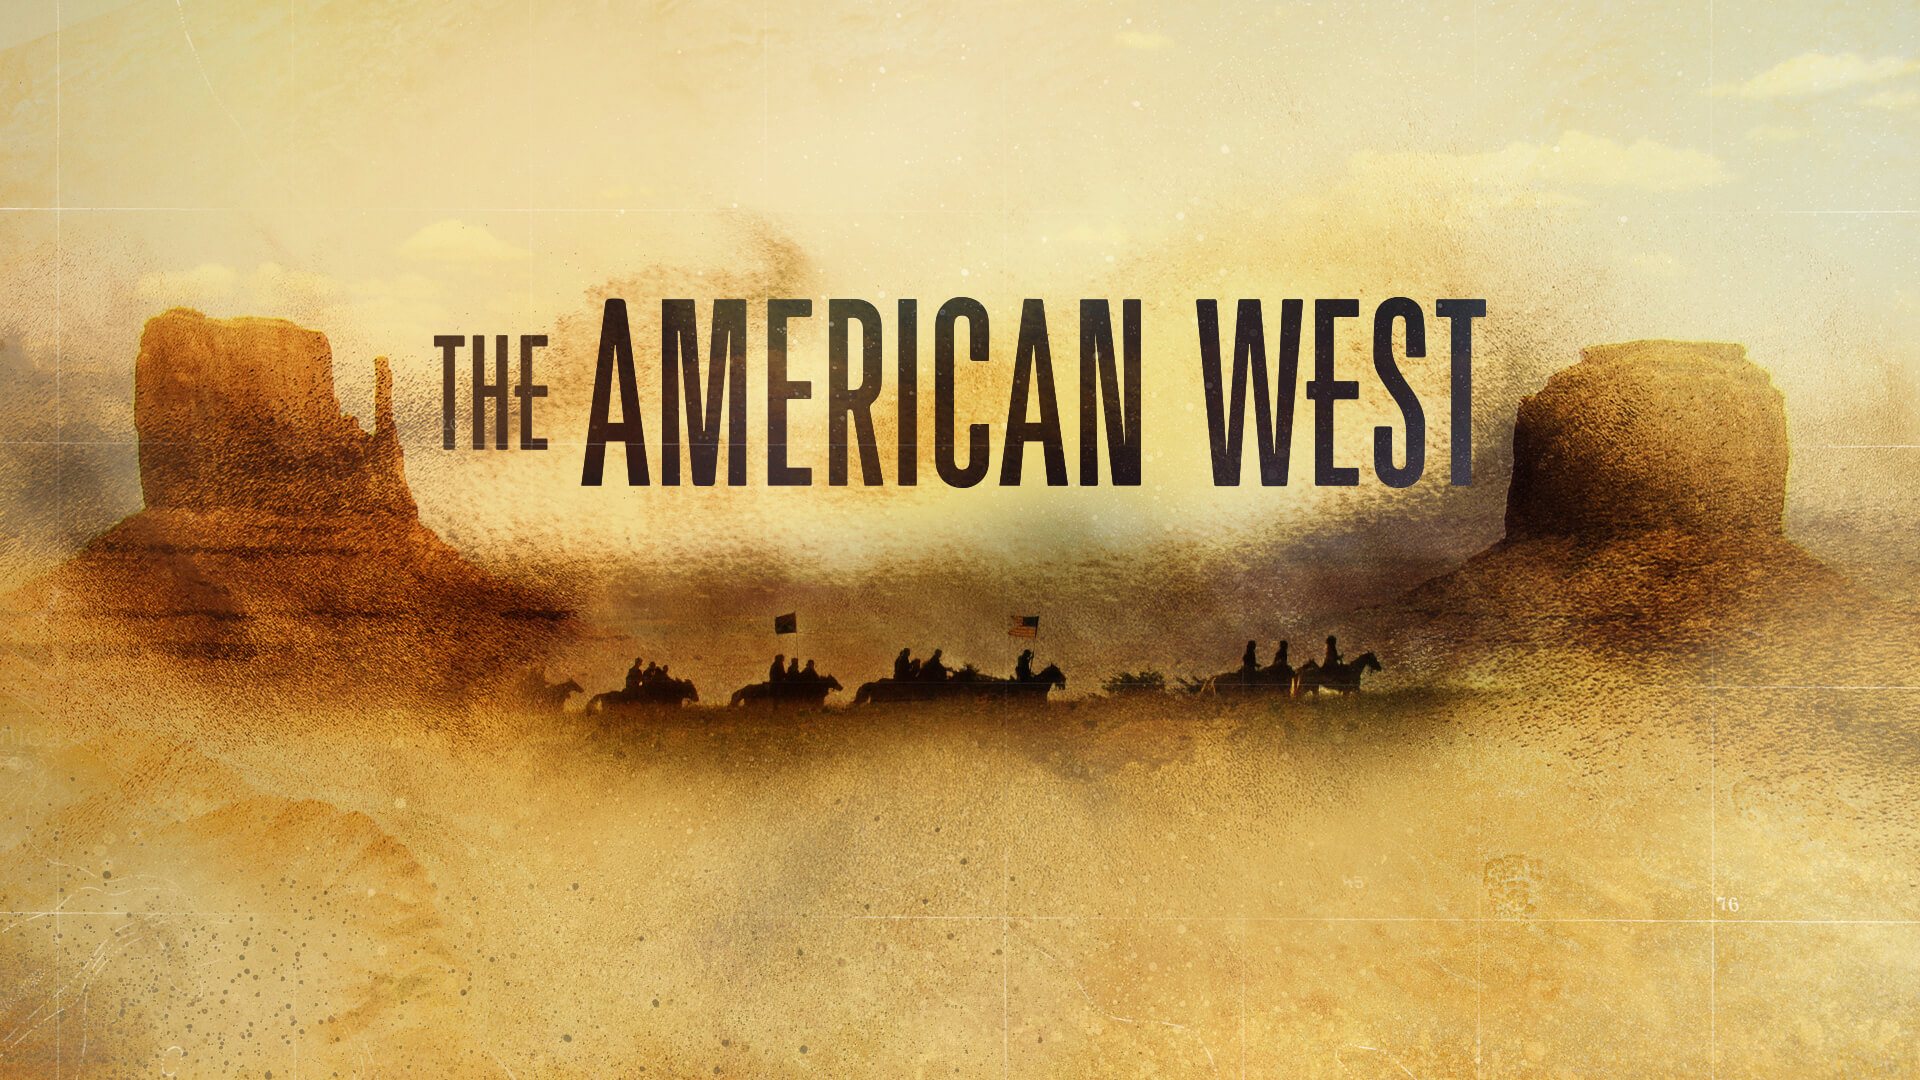 151030_AMC_THEWEST_TITLE_O_SML.jpg